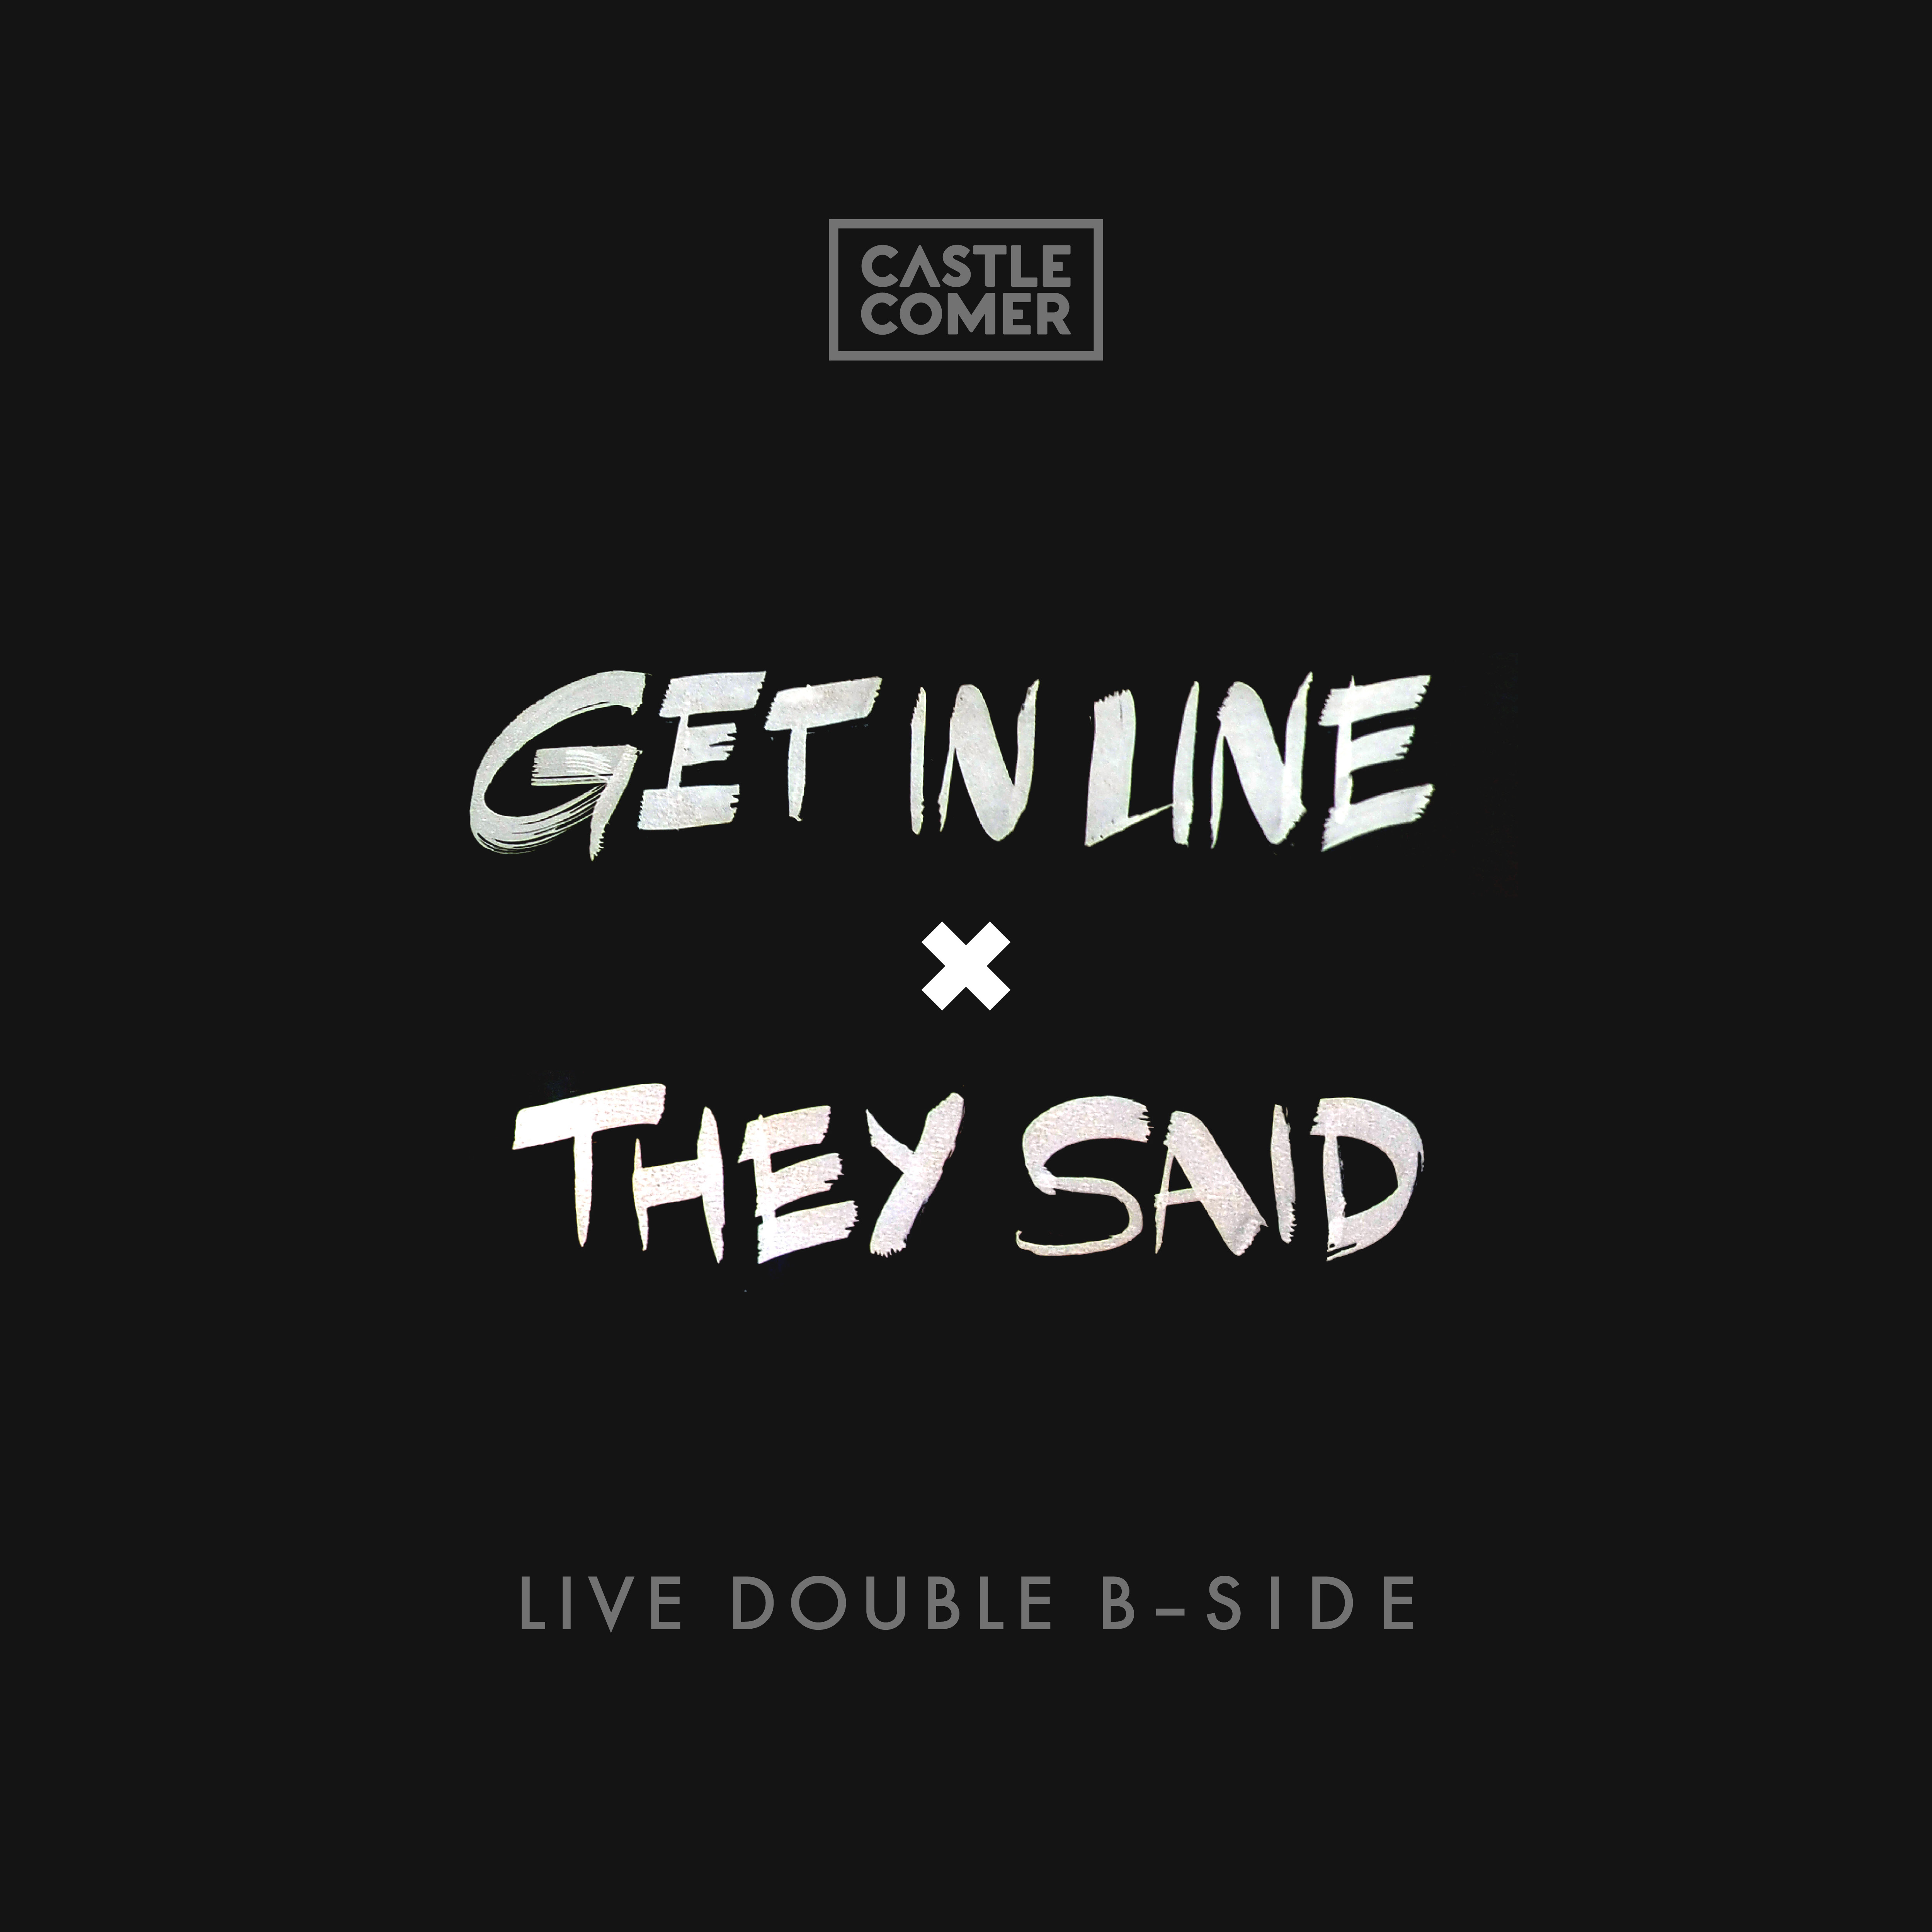 Live Double B-Side (Get in Line X They Said)